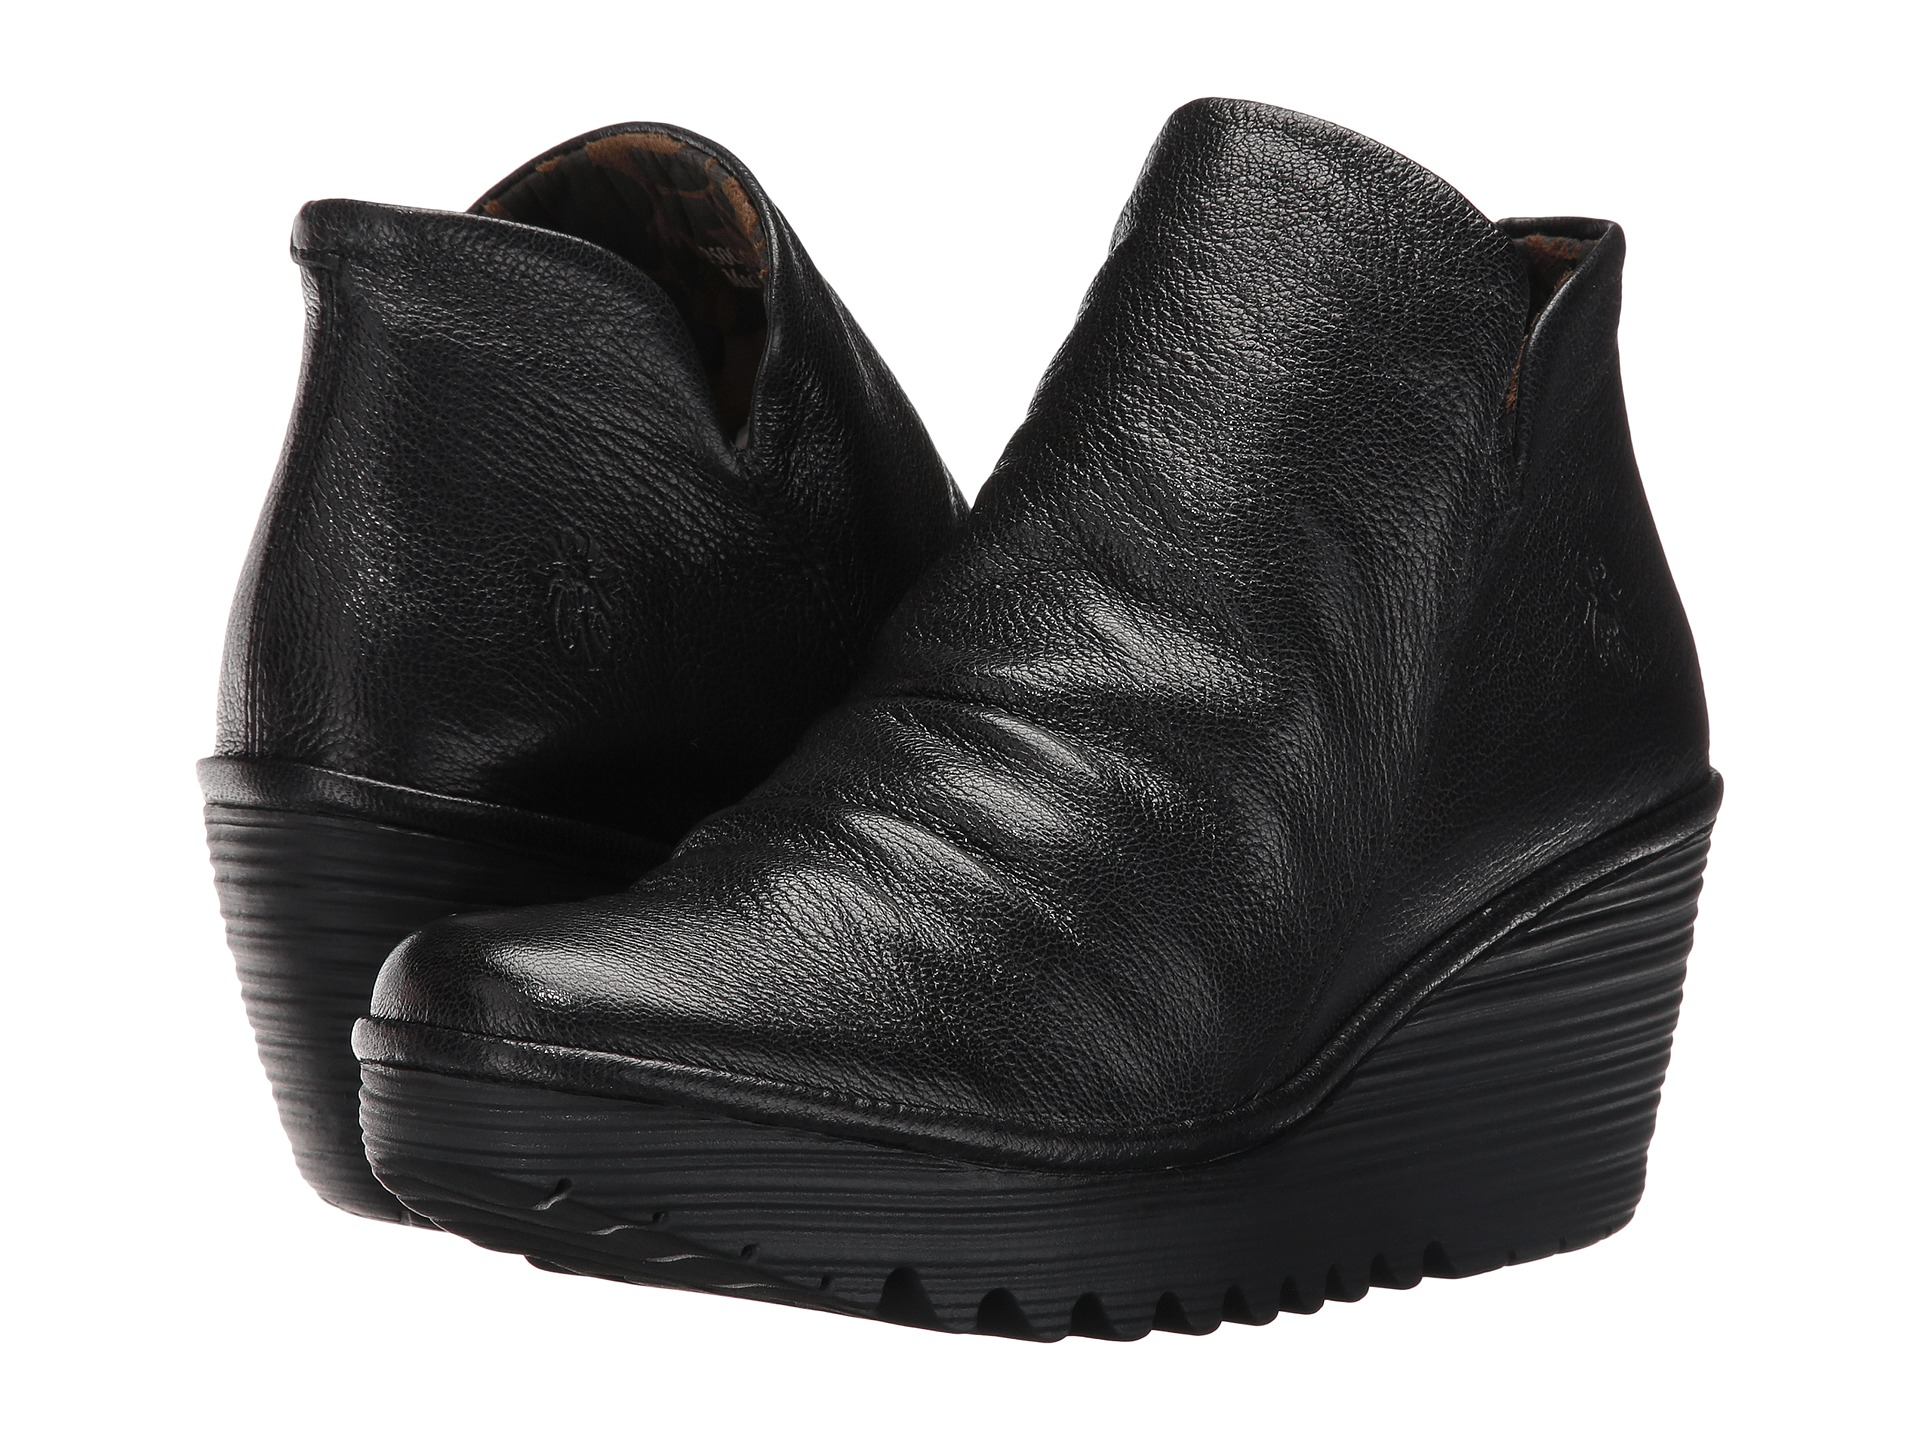 Boots, Wedges, Women | Shipped Free at Zappos